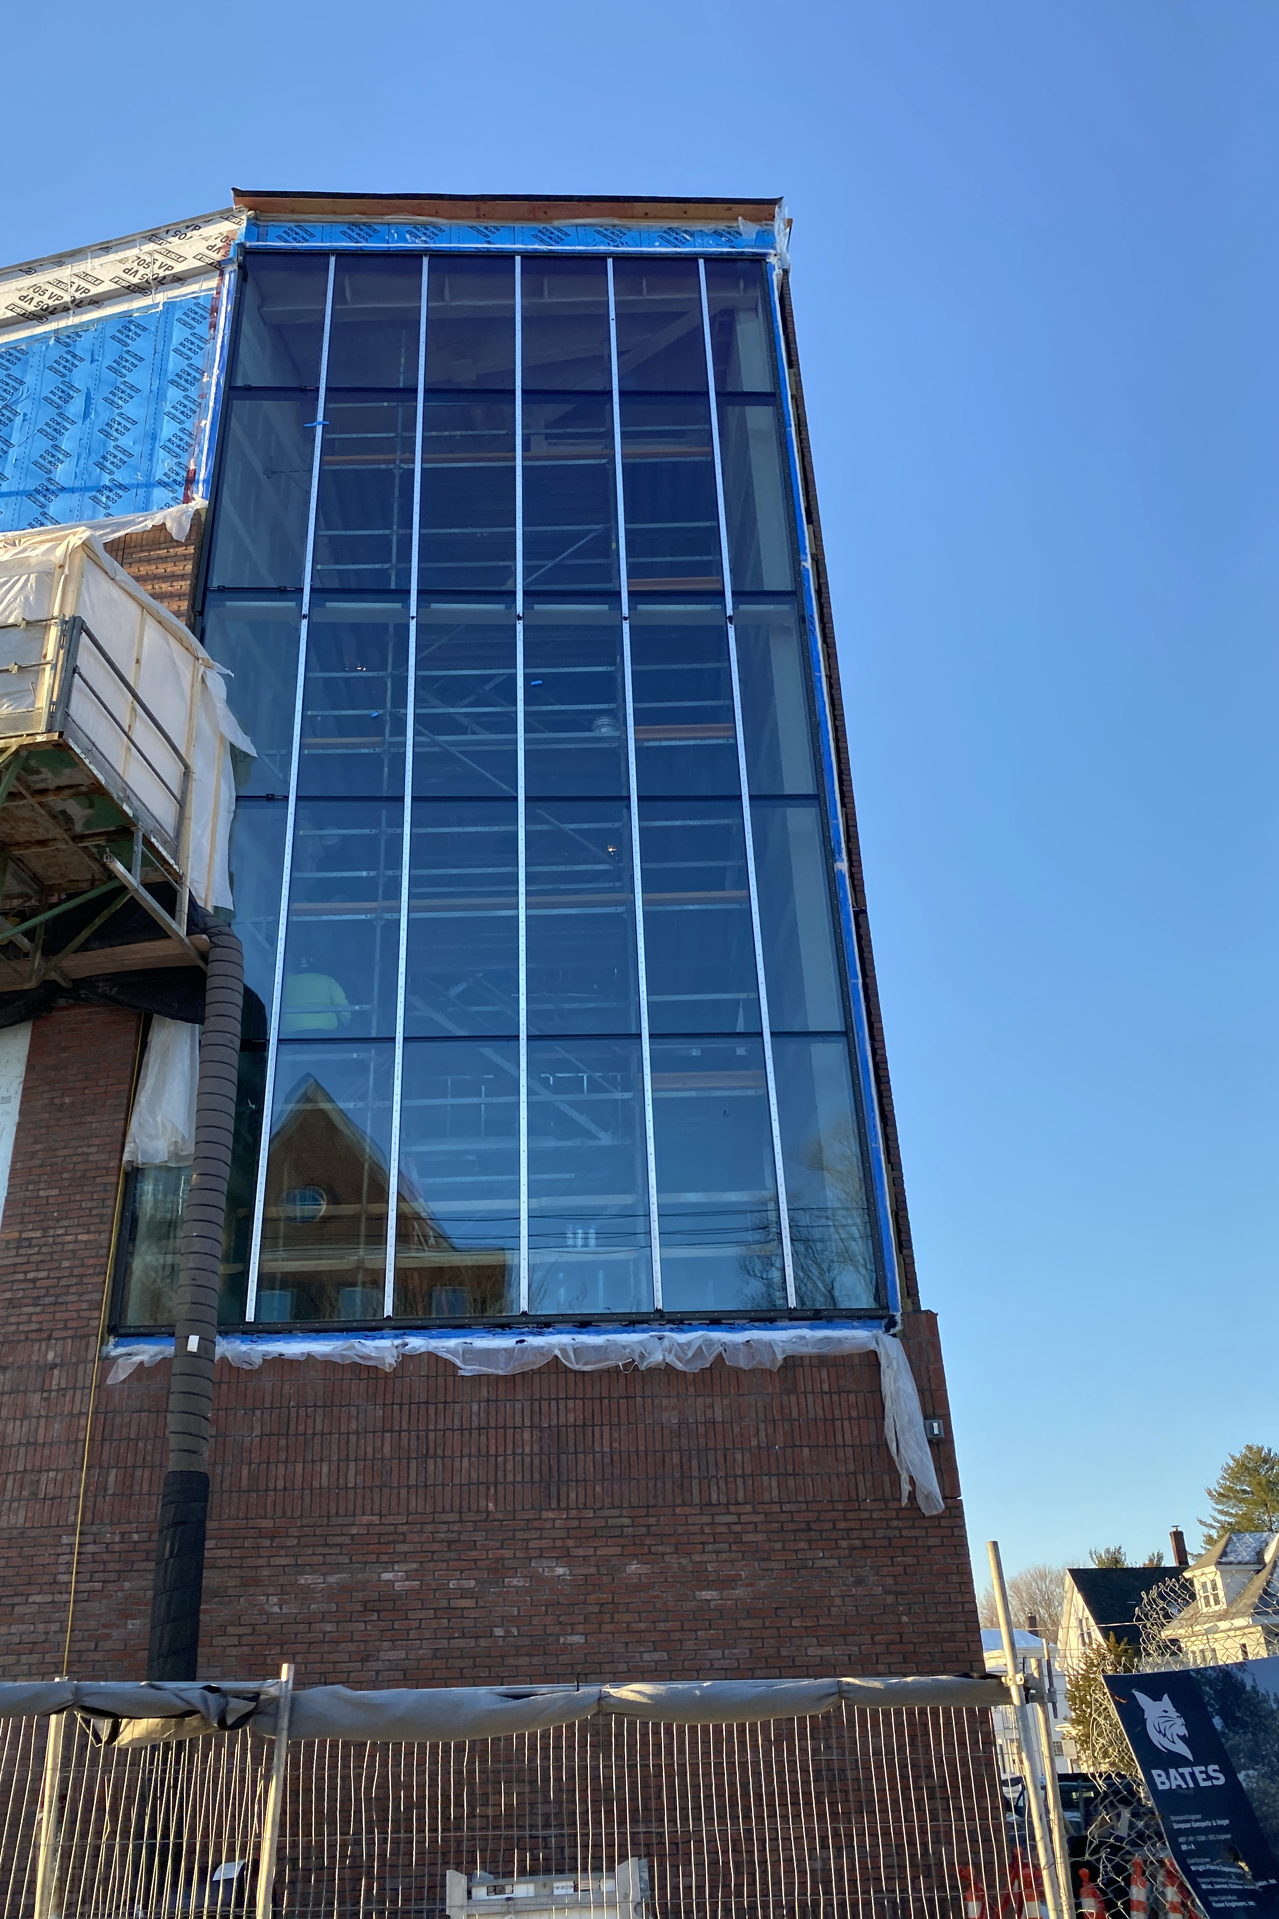 This Jan. 8 view shows a signature Bonney Center feature, the Beacon, with its glass curtain wall complete. (Geoff Swift/Bates College)